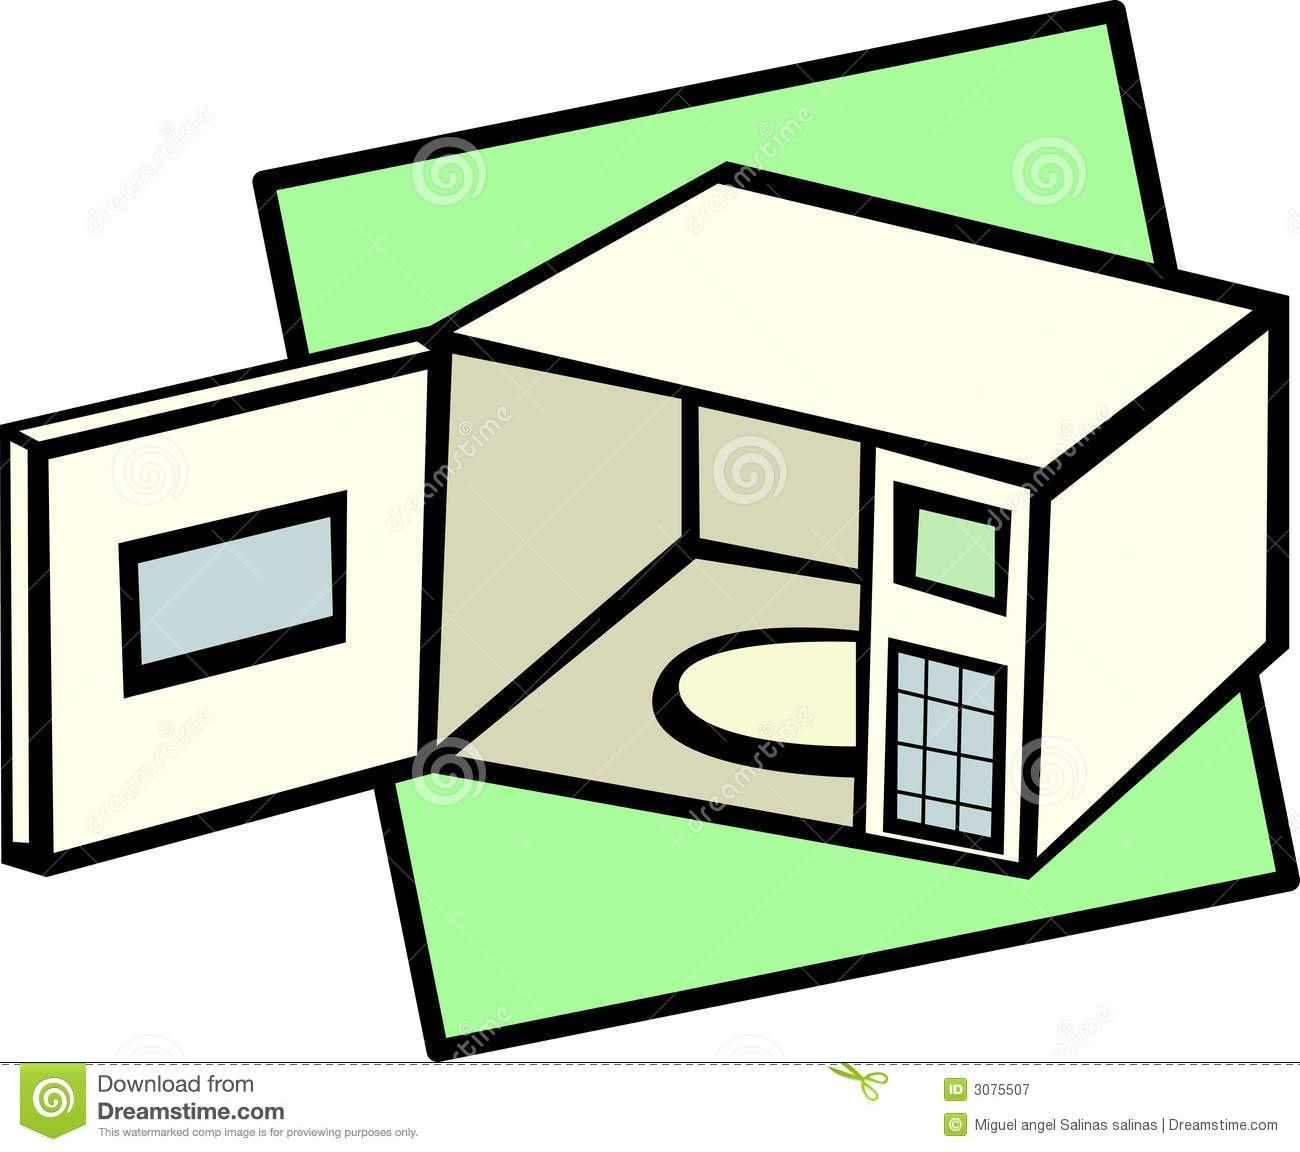 microwave clipart. illustration microwave clipart